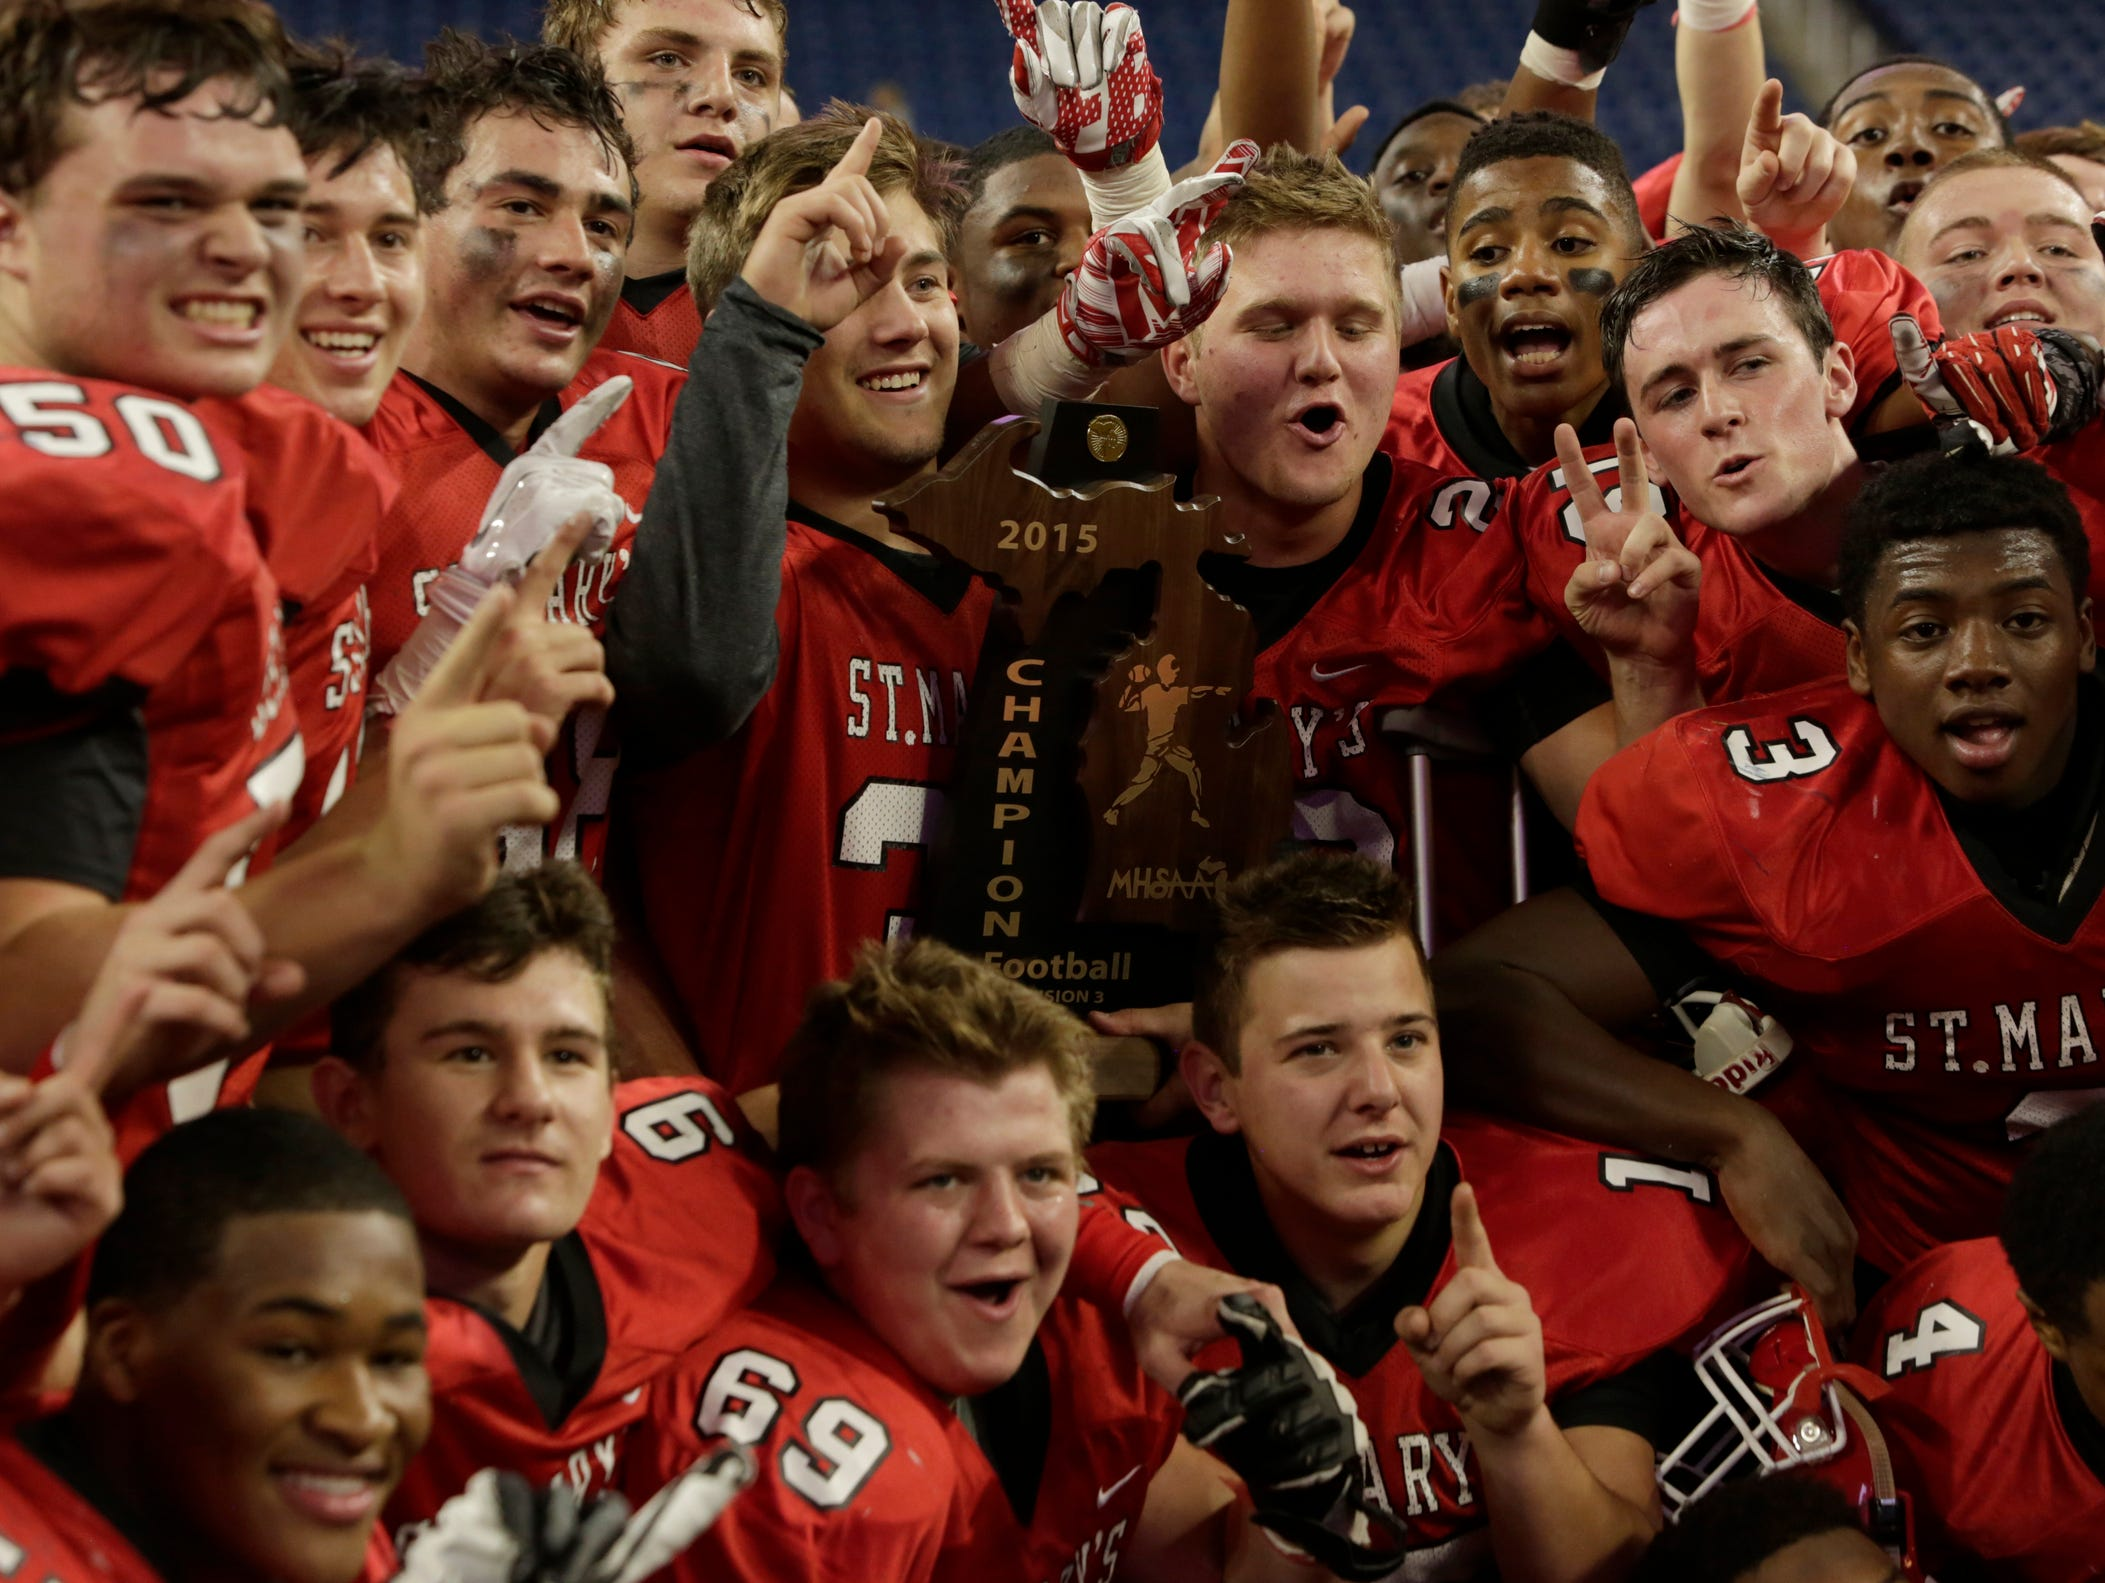 Orchard Lake St. Mary's celebrates their 29-12 victory over Chelsea in the Division 3 football title game at Ford Field on Saturday.